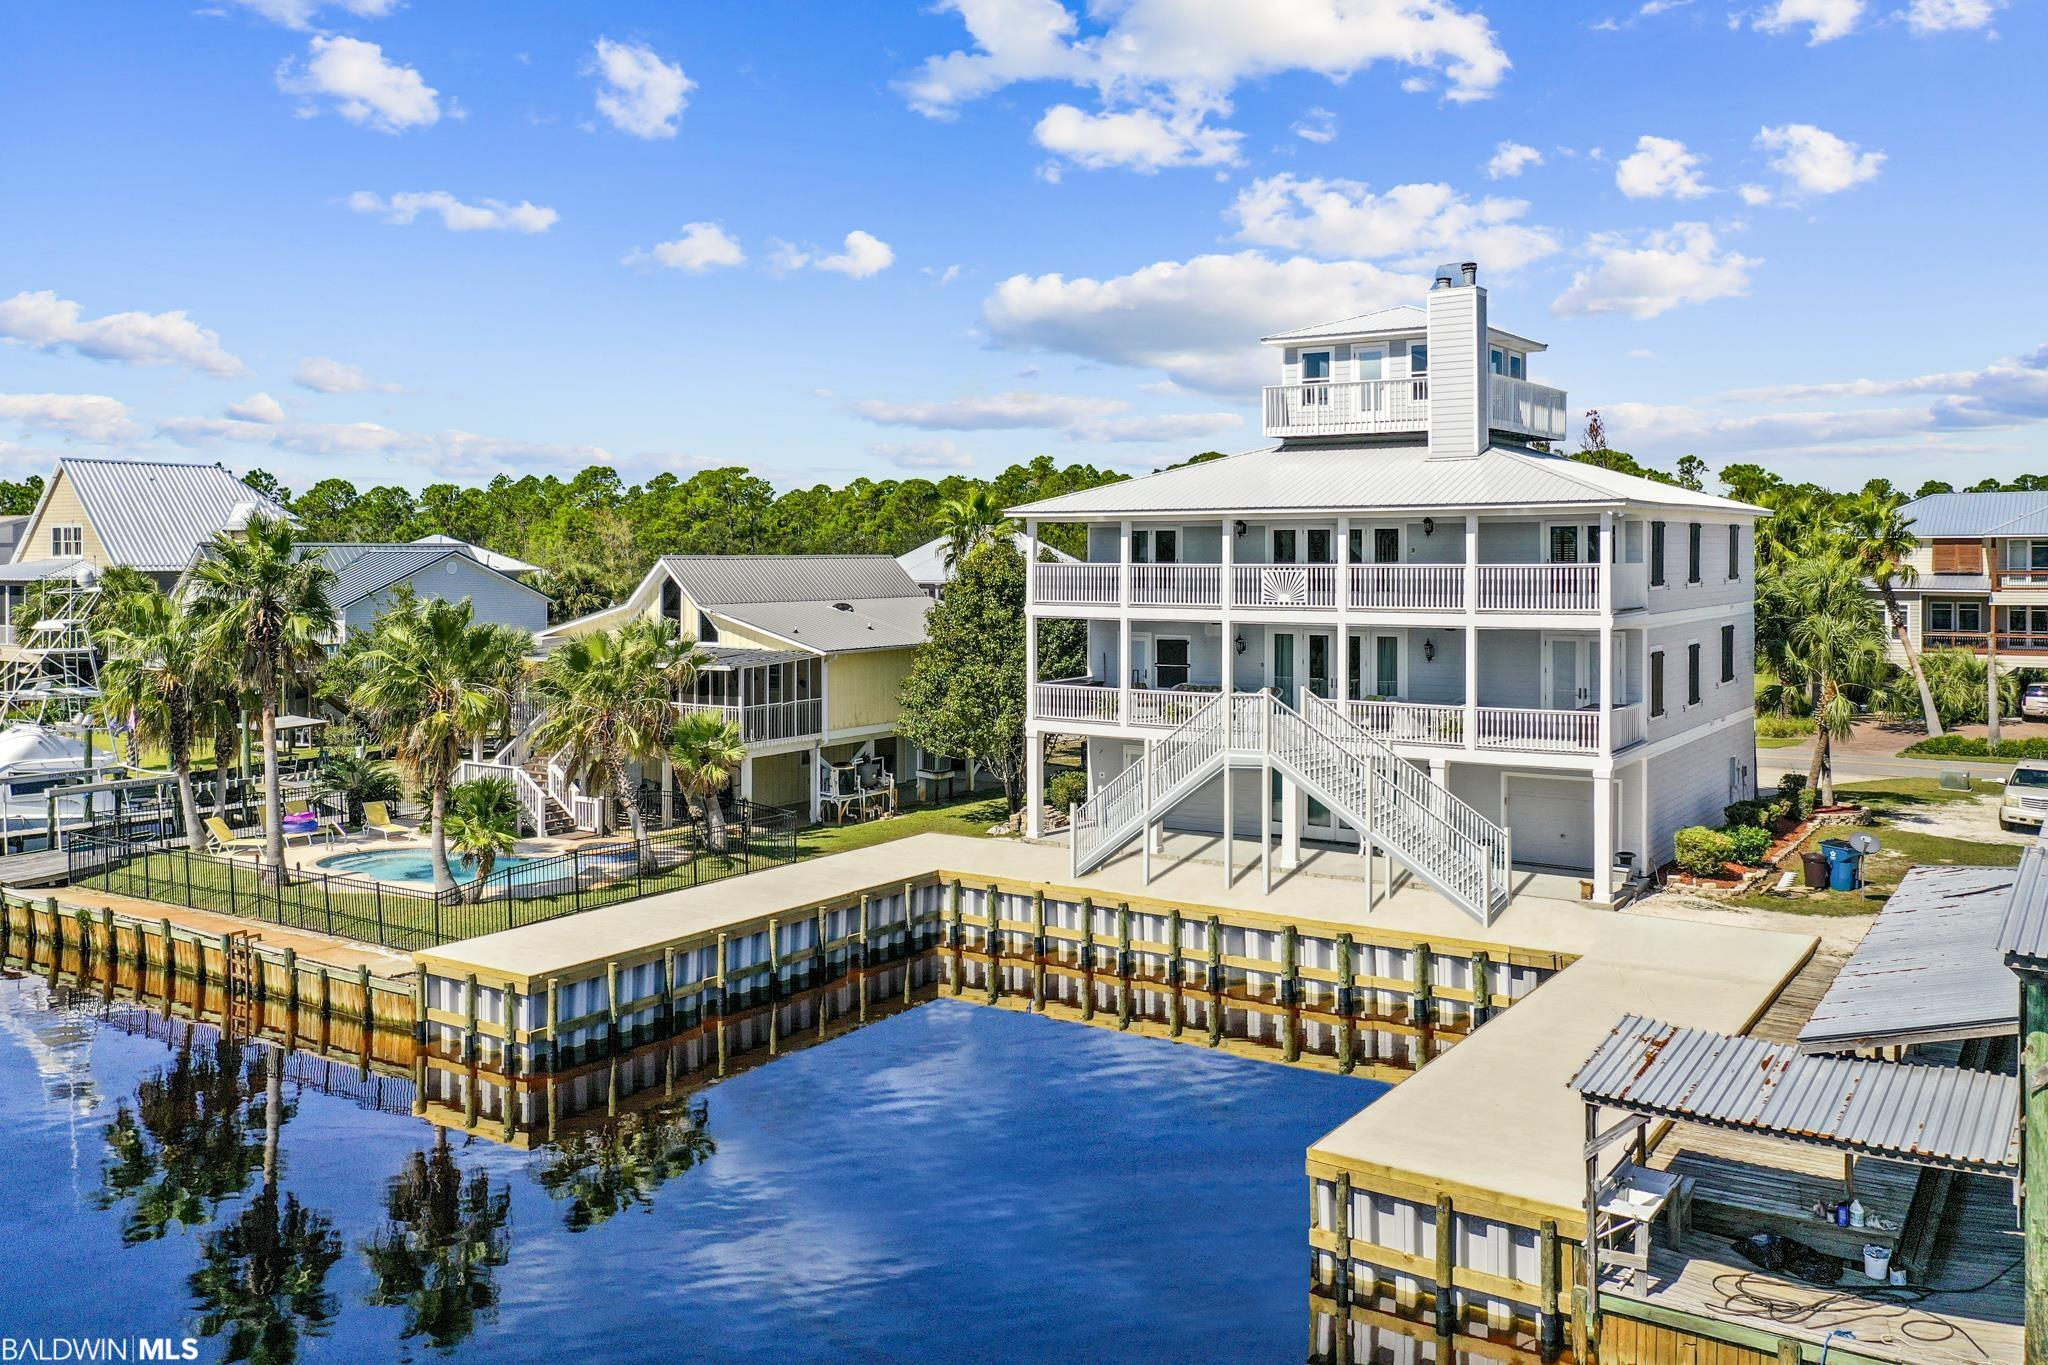 Conveniently located in the heart of Orange Beach, this beautiful home is perfectly situated on a wide canal leading to Orange Beach Marina, Fisher's, and Terry Cove. With seven bedrooms and over 8,500 total square feet under roof, the house offers a seemingly endless amount of space to live, entertain, and relax. This single-owner home has never been offered for sale and features nine-foot ceilings, crown molding, wood floors, two fireplaces, a whole-house sound system, plantation shutters, a plethora of windows allowing for an abundance of natural light, two kitchens, a massive entertainment room measuring over 1,400 SF, and a fourth story crow's nest offering panoramic views of Orange Beach. The fully remodeled kitchen boasts light-colored quartz countertops, a quartz backsplash, wood-block island, bar with seating for four, stainless steel appliances, and a built-in cooktop microwave, and oven. The spacious master suite features direct balcony access, a fireplace, large walk-in shower, separate jetted tub, double vanity, private water closet, and a large walk-in closet. The house is anchored by two heated and cooled attached garages that measure 40 feet in depth and total 1,080 SF. The exterior of the home is outfitted with Hardie-Board siding, a metal roof, impact resistant tri-latching doors, functional storm shutters, Trex decking, fiberglass encased handrails and columns, and over 2,000 SF of covered porches featuring bead board ceilings. The massive boat slip measuring 40' wide and 41' deep offers an endless amount of protected water and is outfitted with brand new pilings, seawall, and poured concrete dock. The time is now – come see this one-of-a-kind home before it is gone! *Please note that the stairs depicted in the rear of the house are not the actual stairs that exist. The stairs were being rebuilt at the time photos were taken.